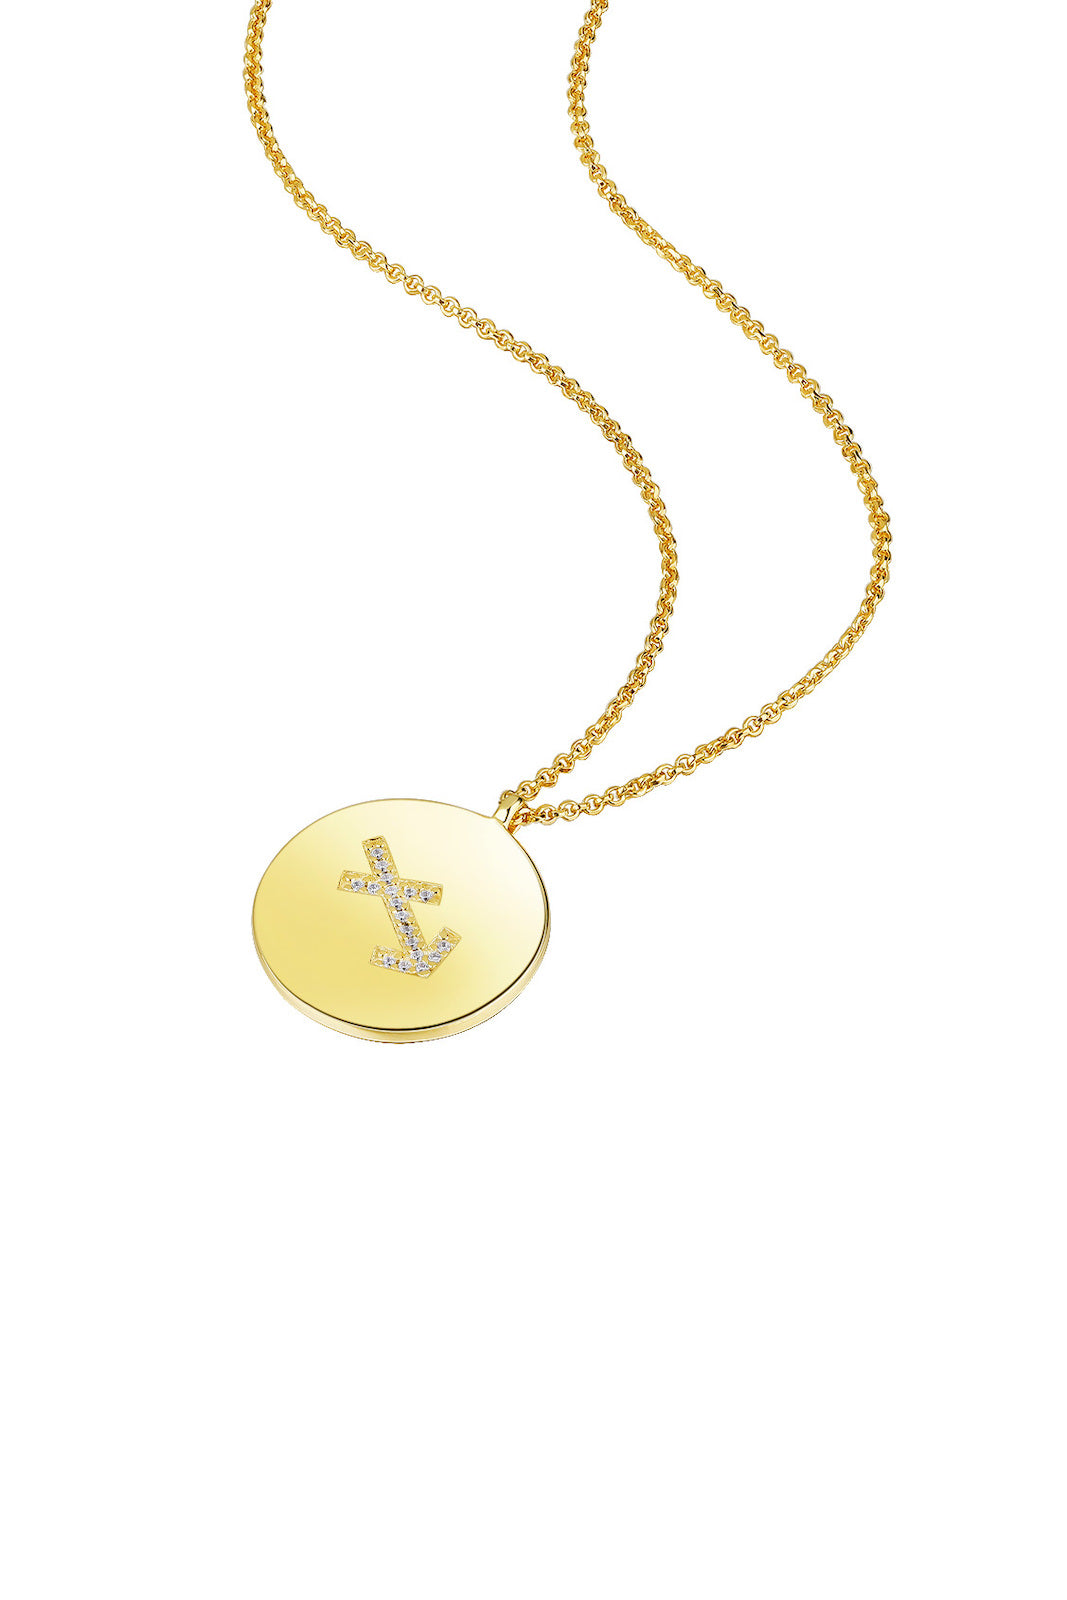 Gold Plated Silver Zodiac Necklace - Sagittarius Side View